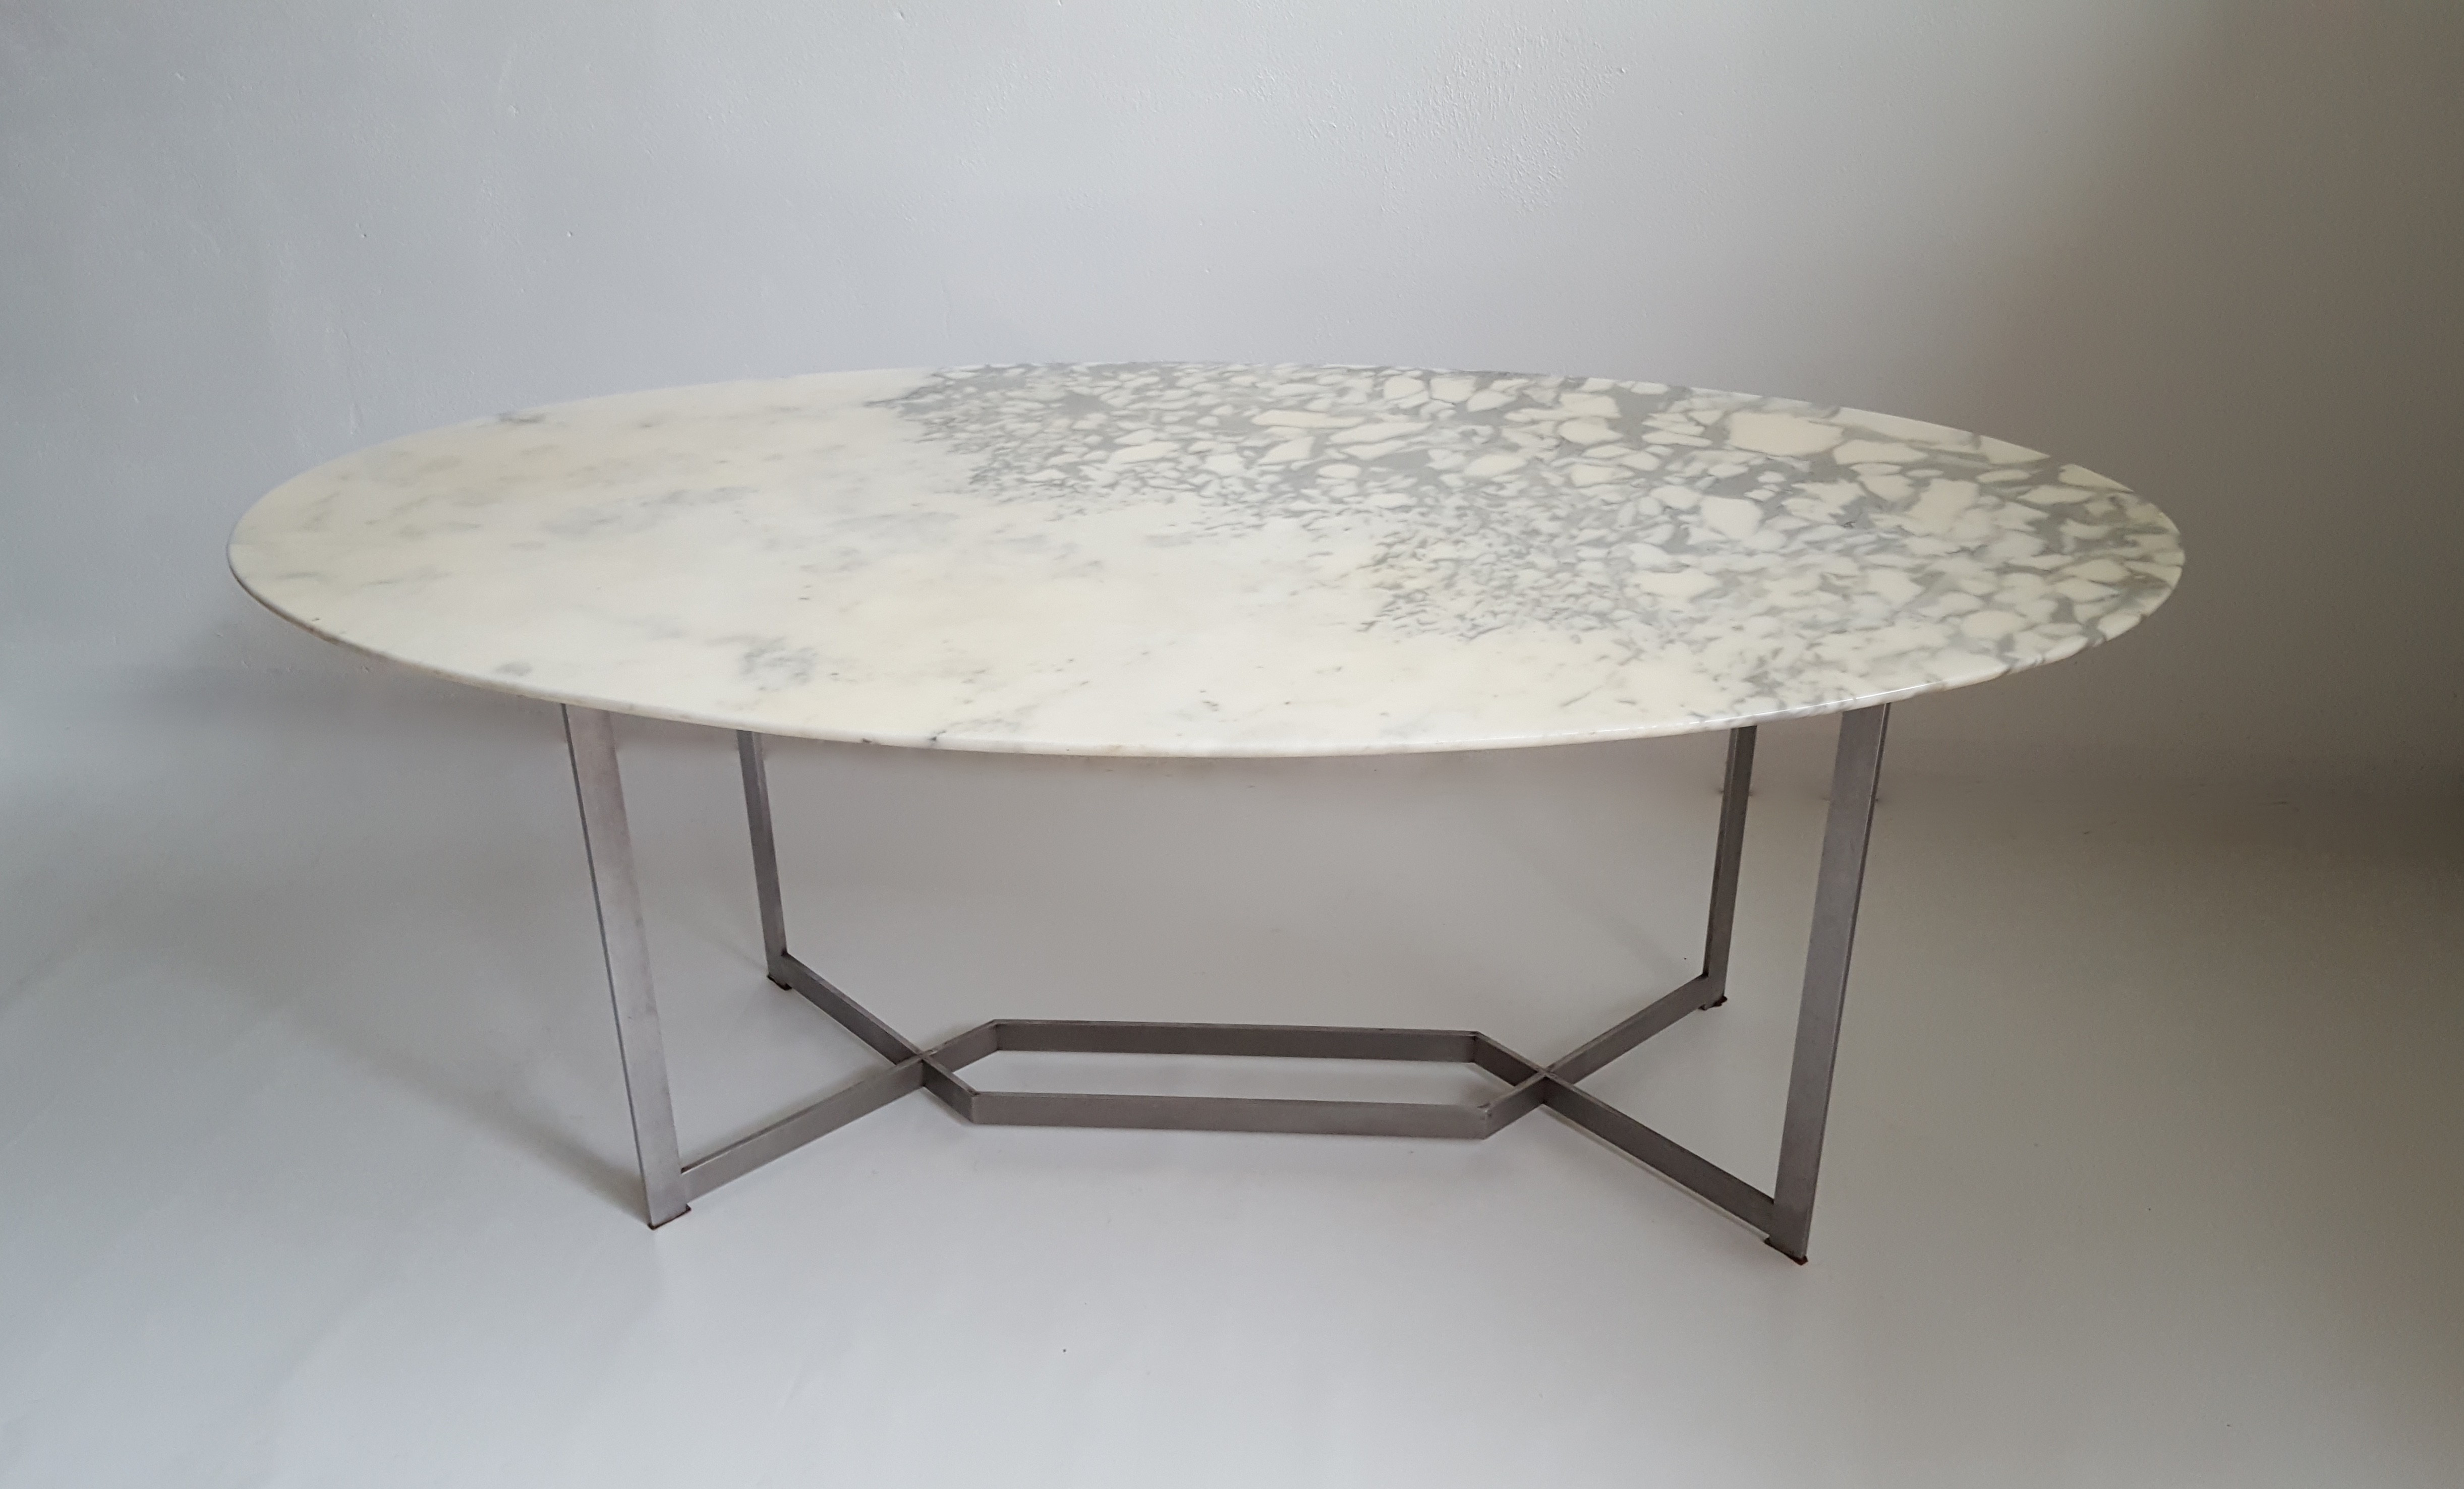 Oval Dining Table In Marble With Stainless Steel Base